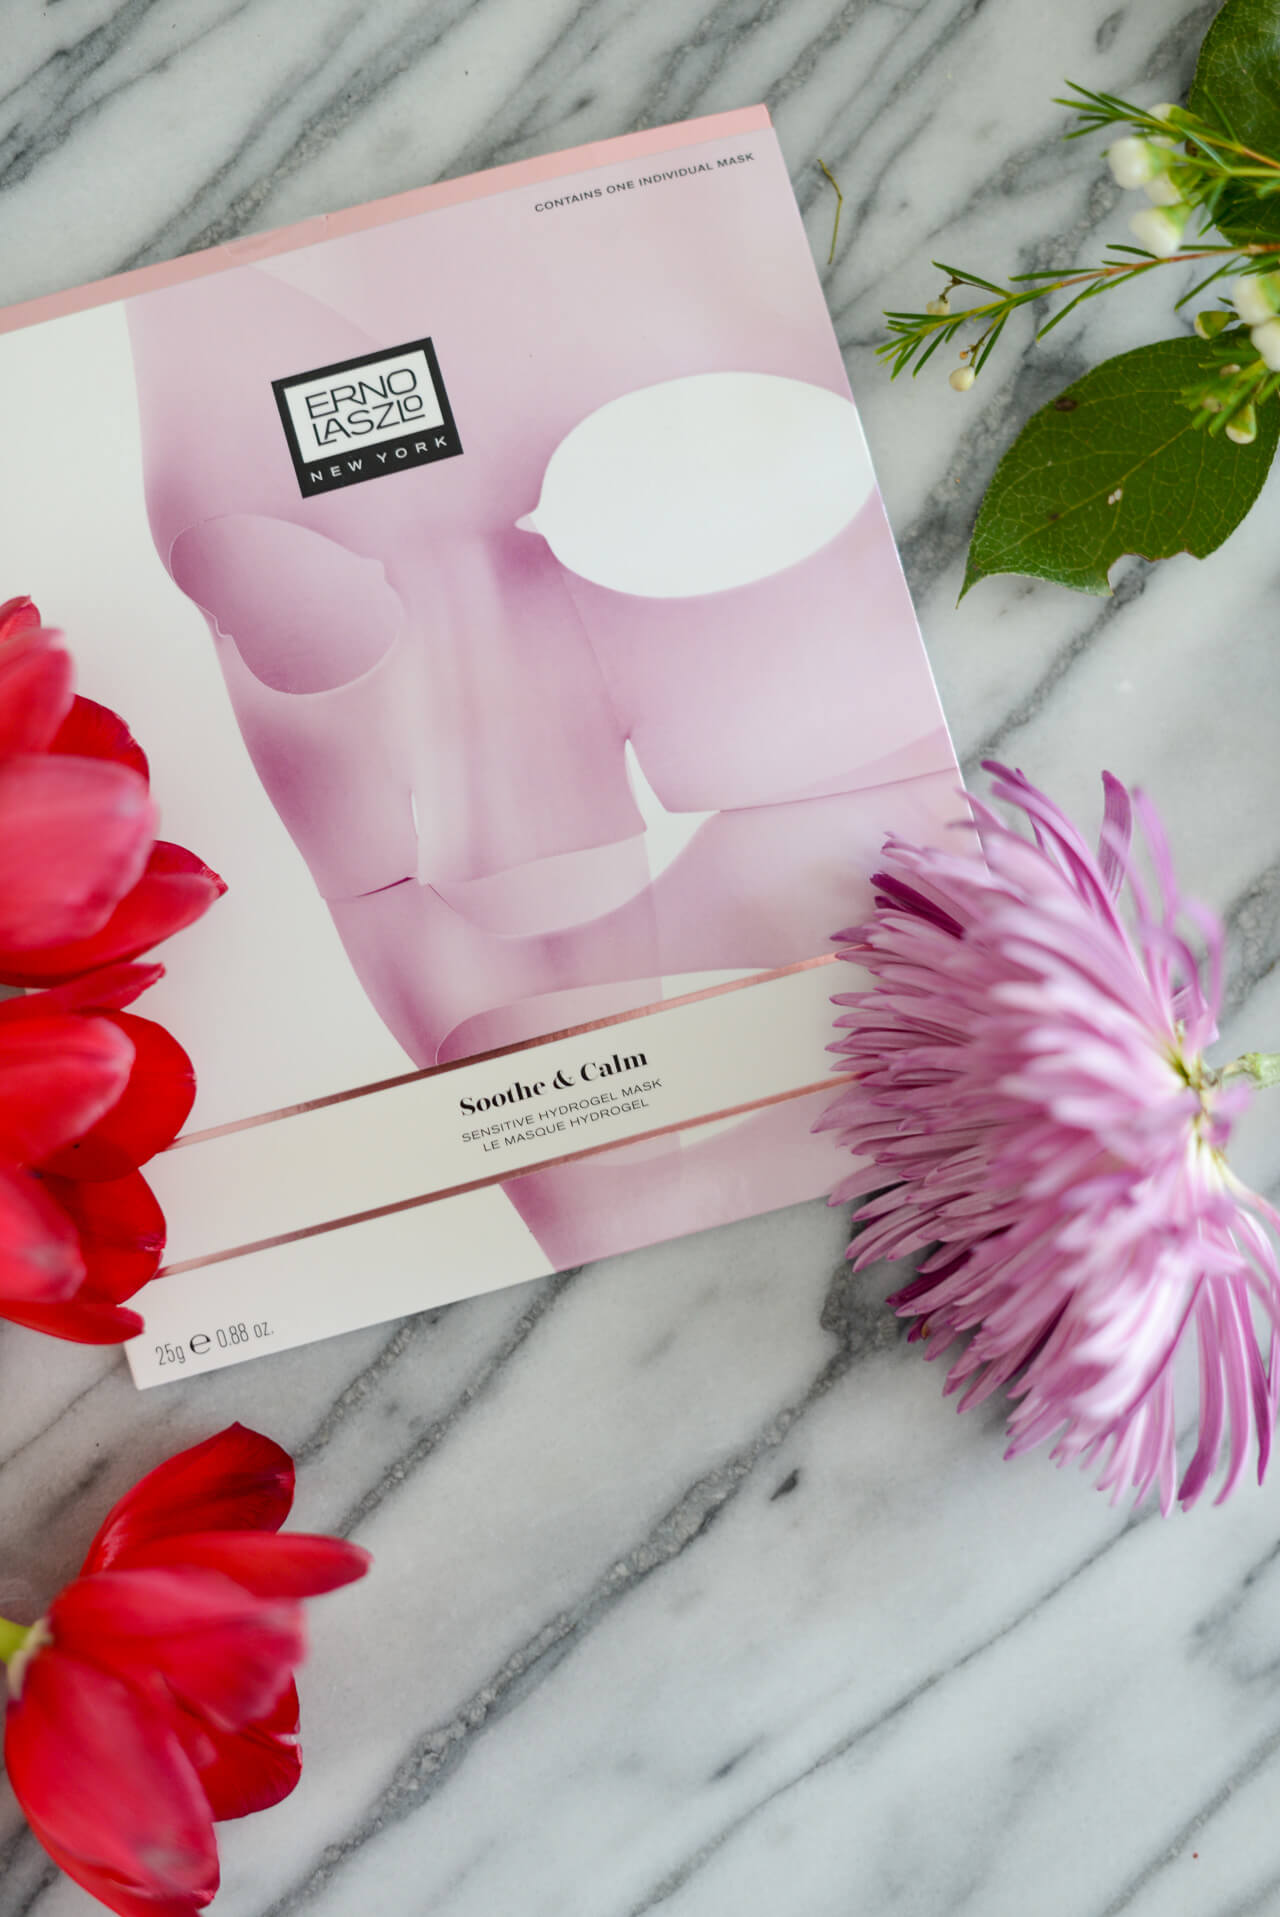 Erno Laszlo Soothe and Calm Sheet Mask Review